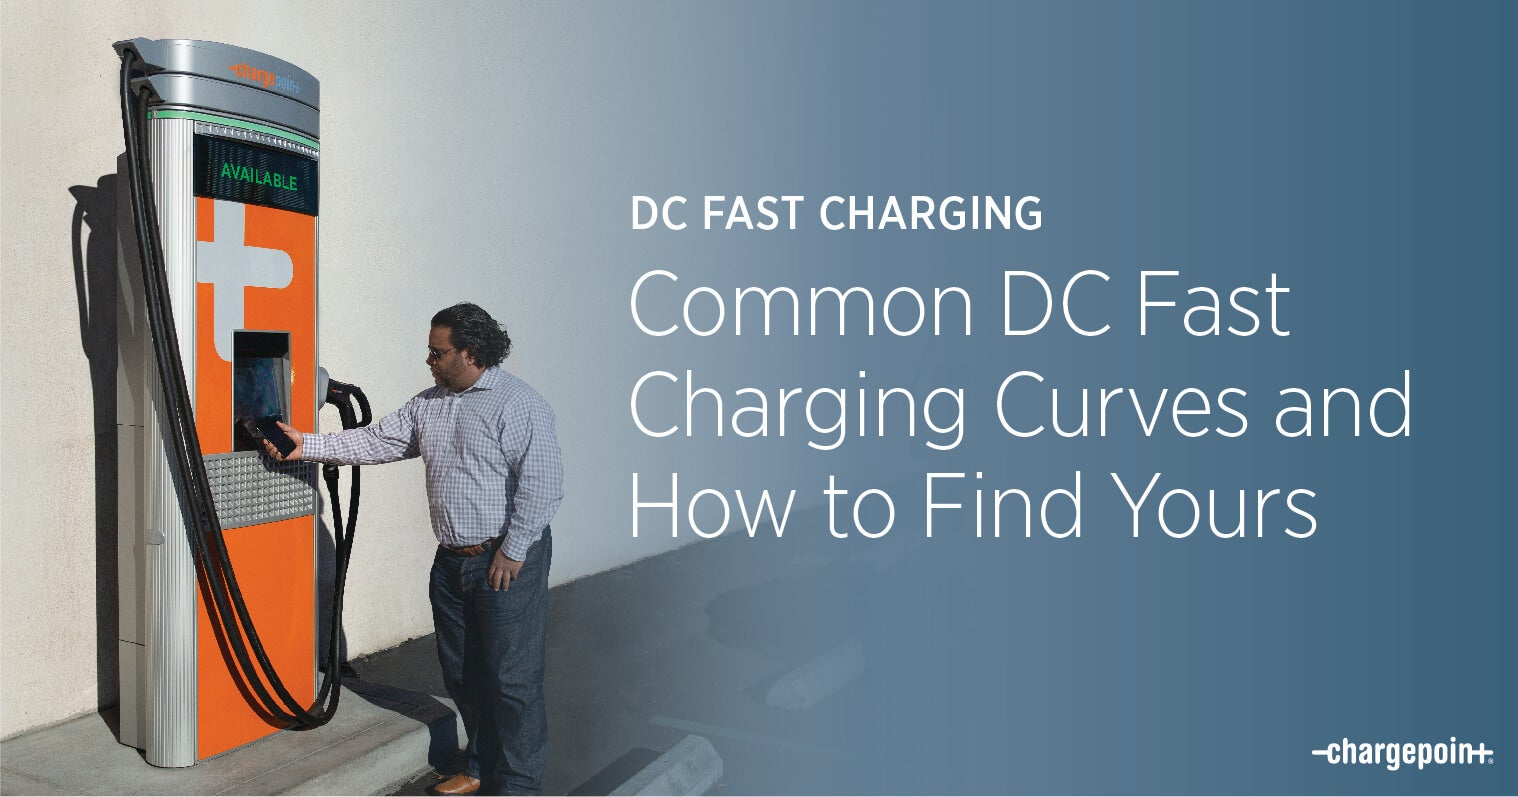 Discover DC Fast Charging Curves